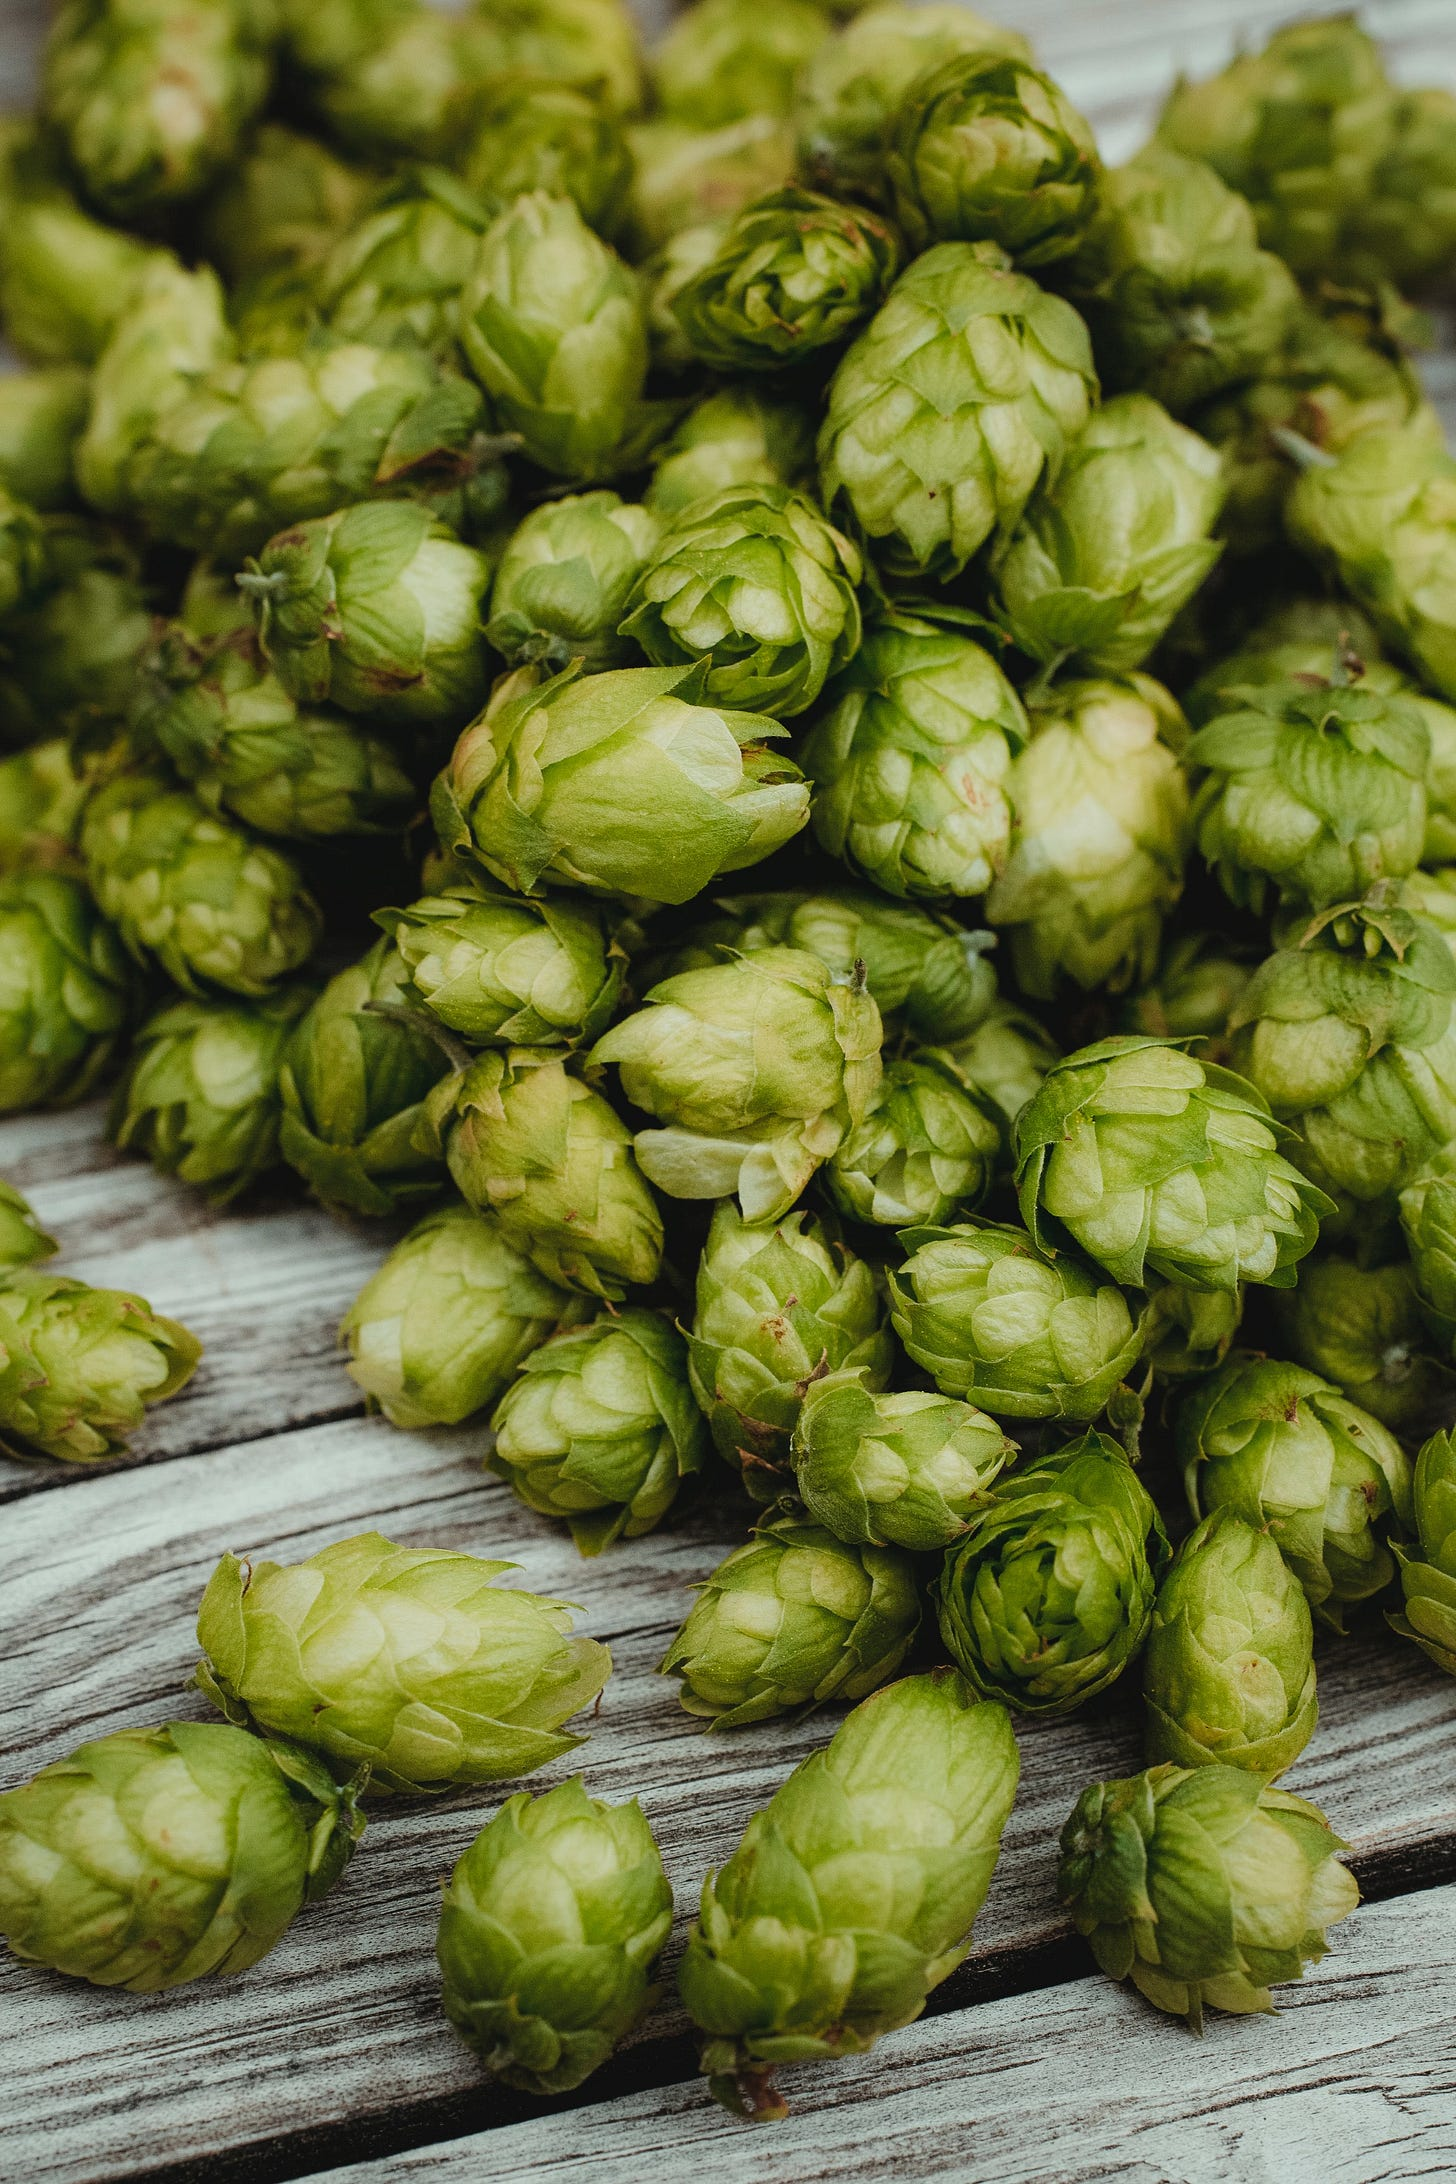 Hop flower cones used for hop extraction in beer brewing